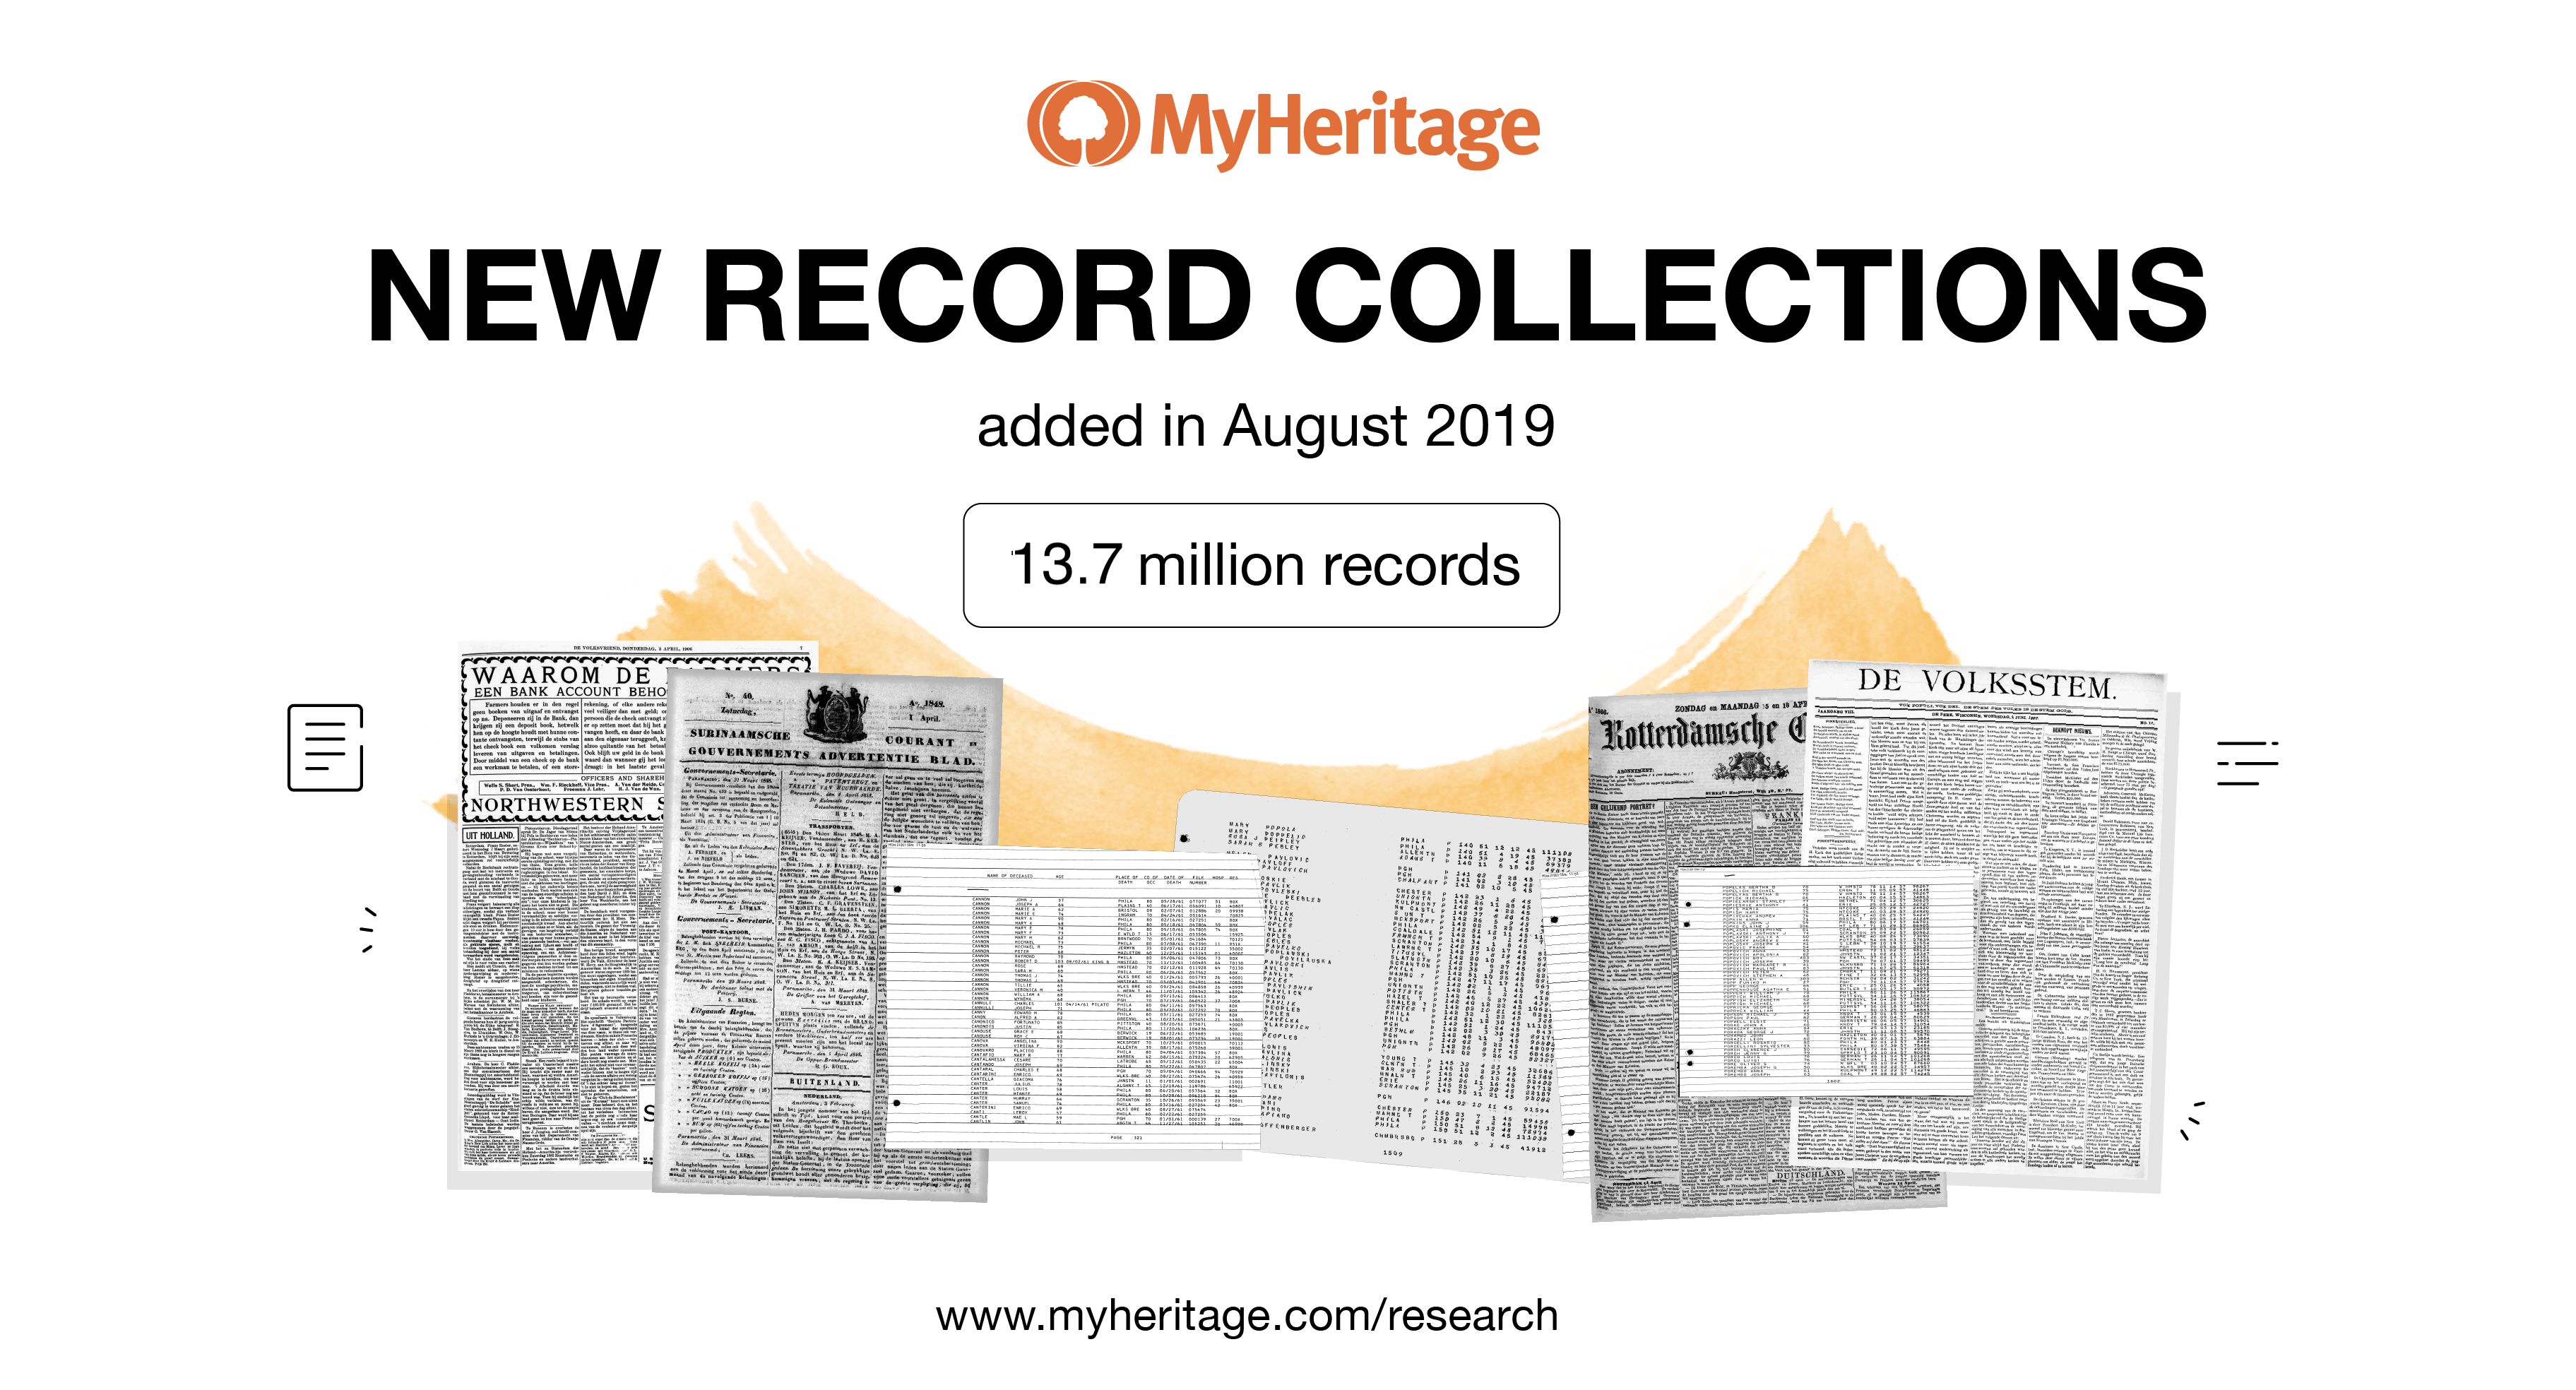 New Historical Records Added in August 2019